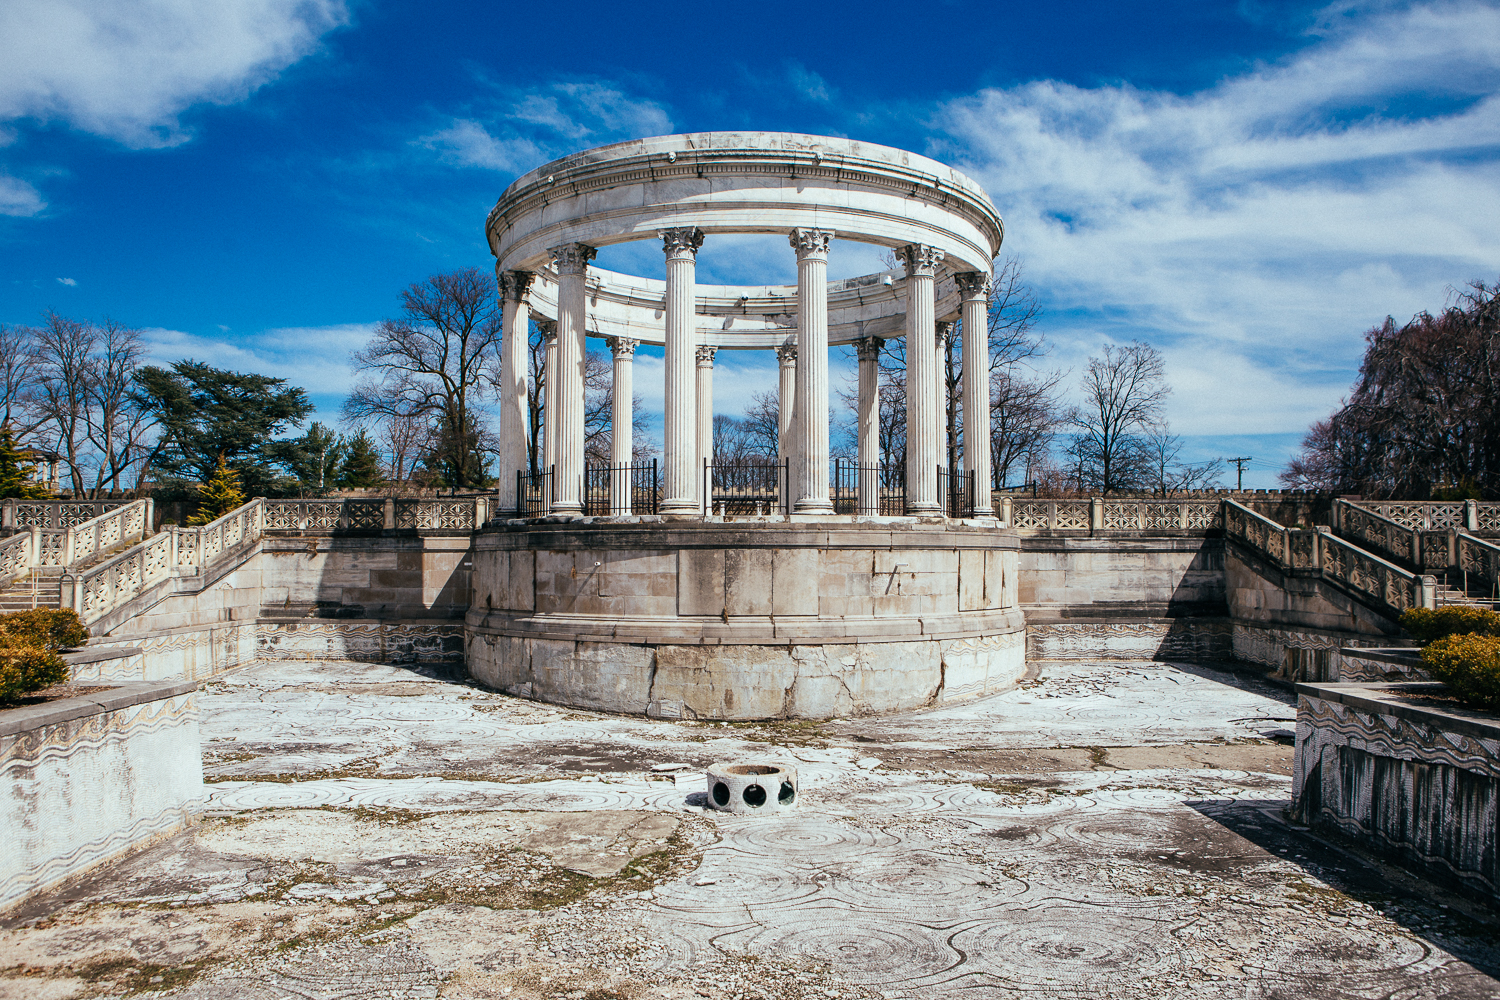 It wasneglected during the 70's and became a place of Satanic worship. That's gross, but it wasa good choice for them, those are 2000 year old pillars that were imported from Italy and amazing to hang out at.